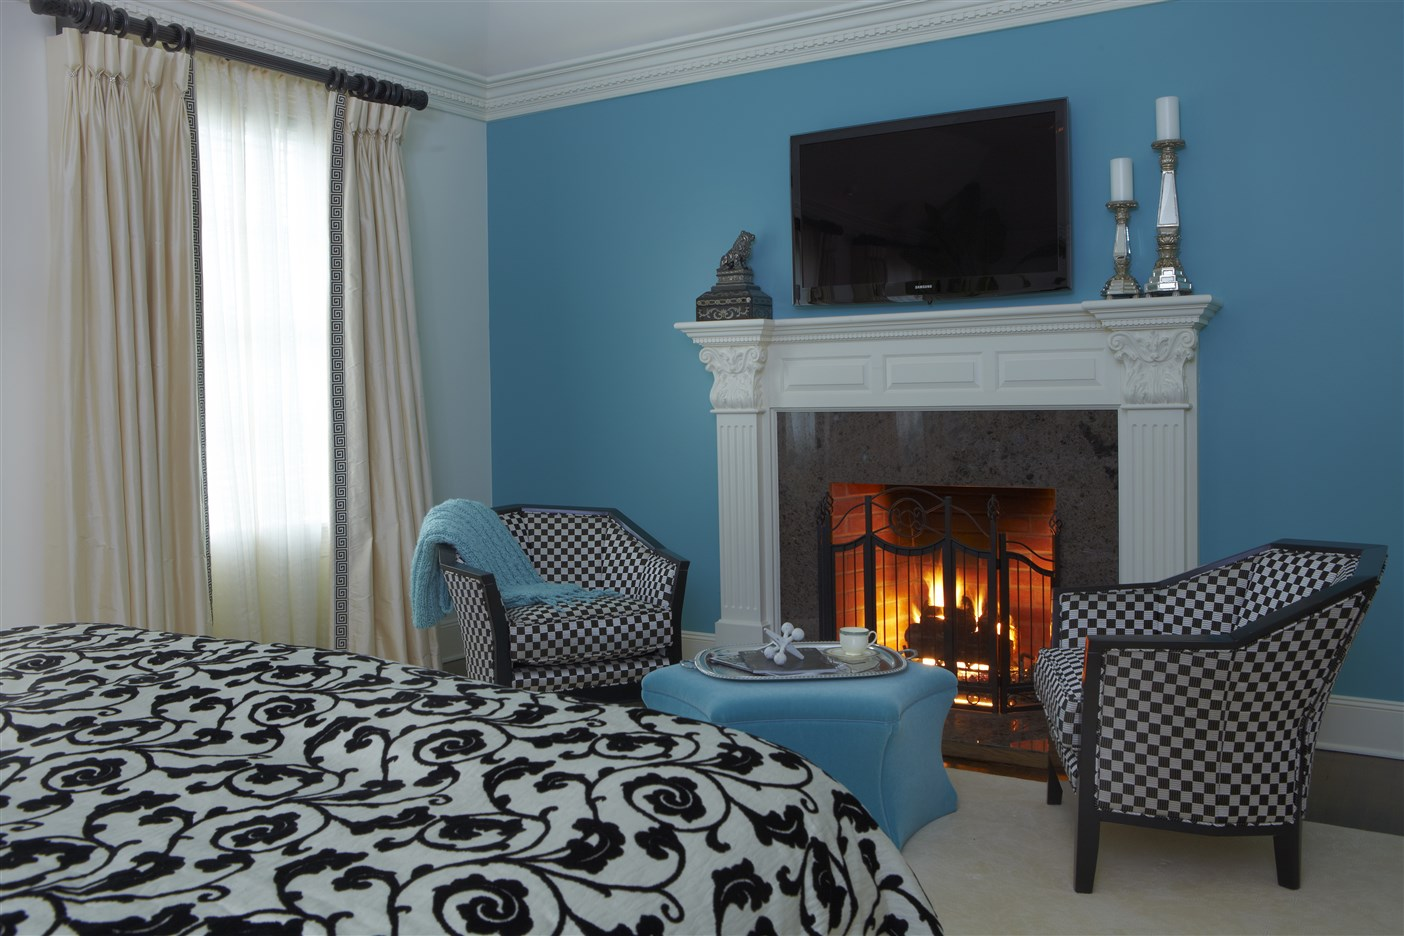 Modern style bedroom with two single couches and fireplace